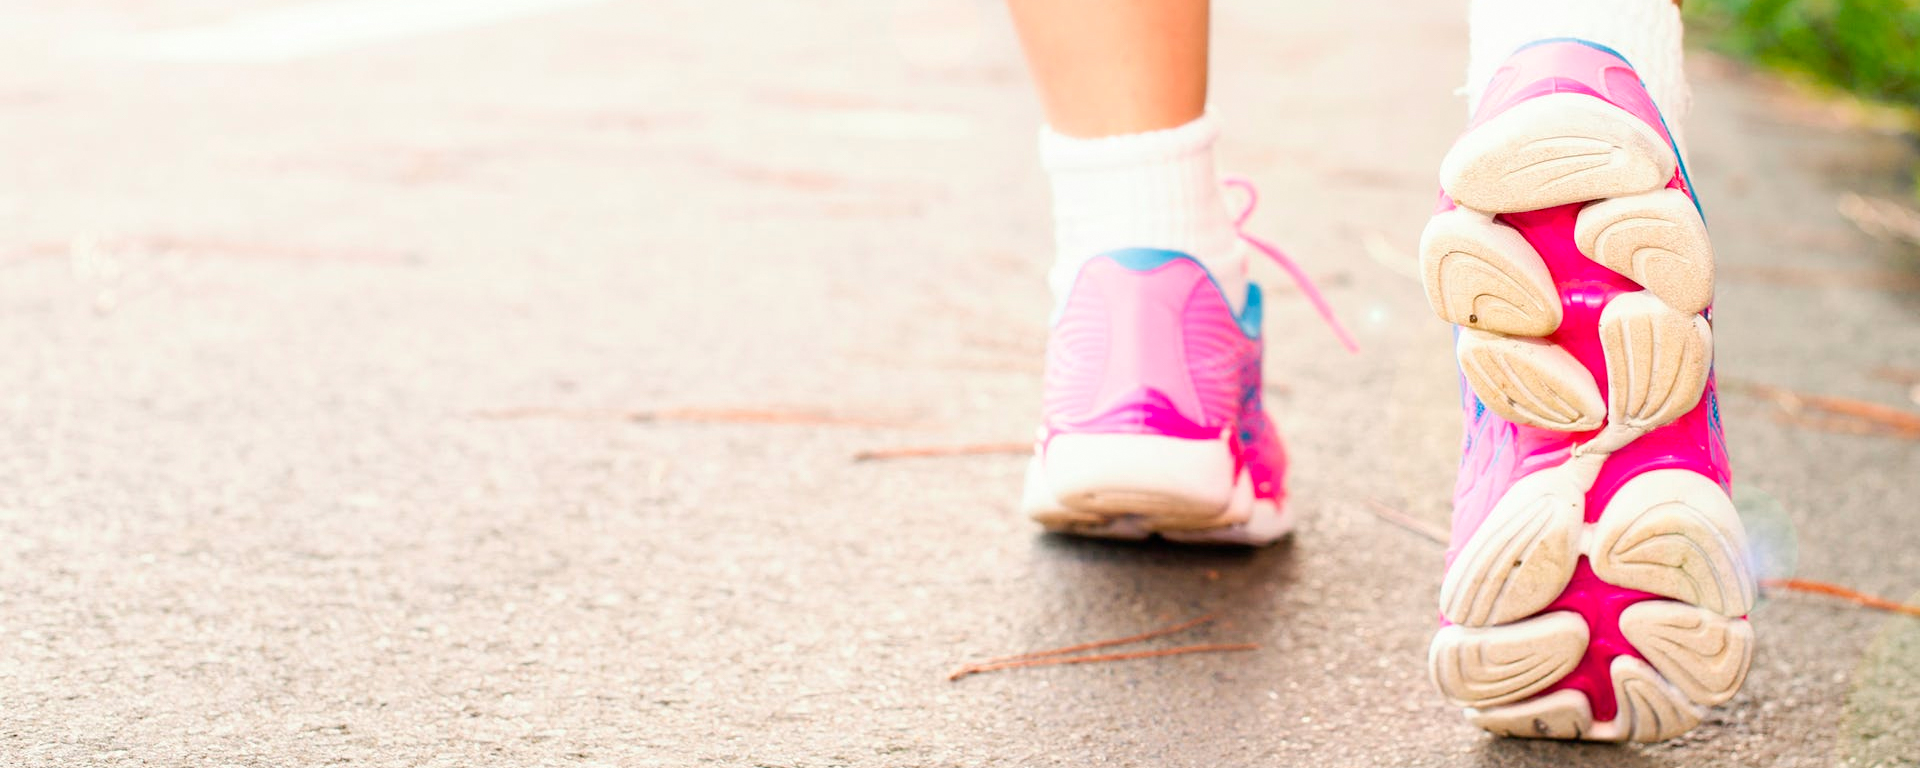 How to Get the Most Value from Walking